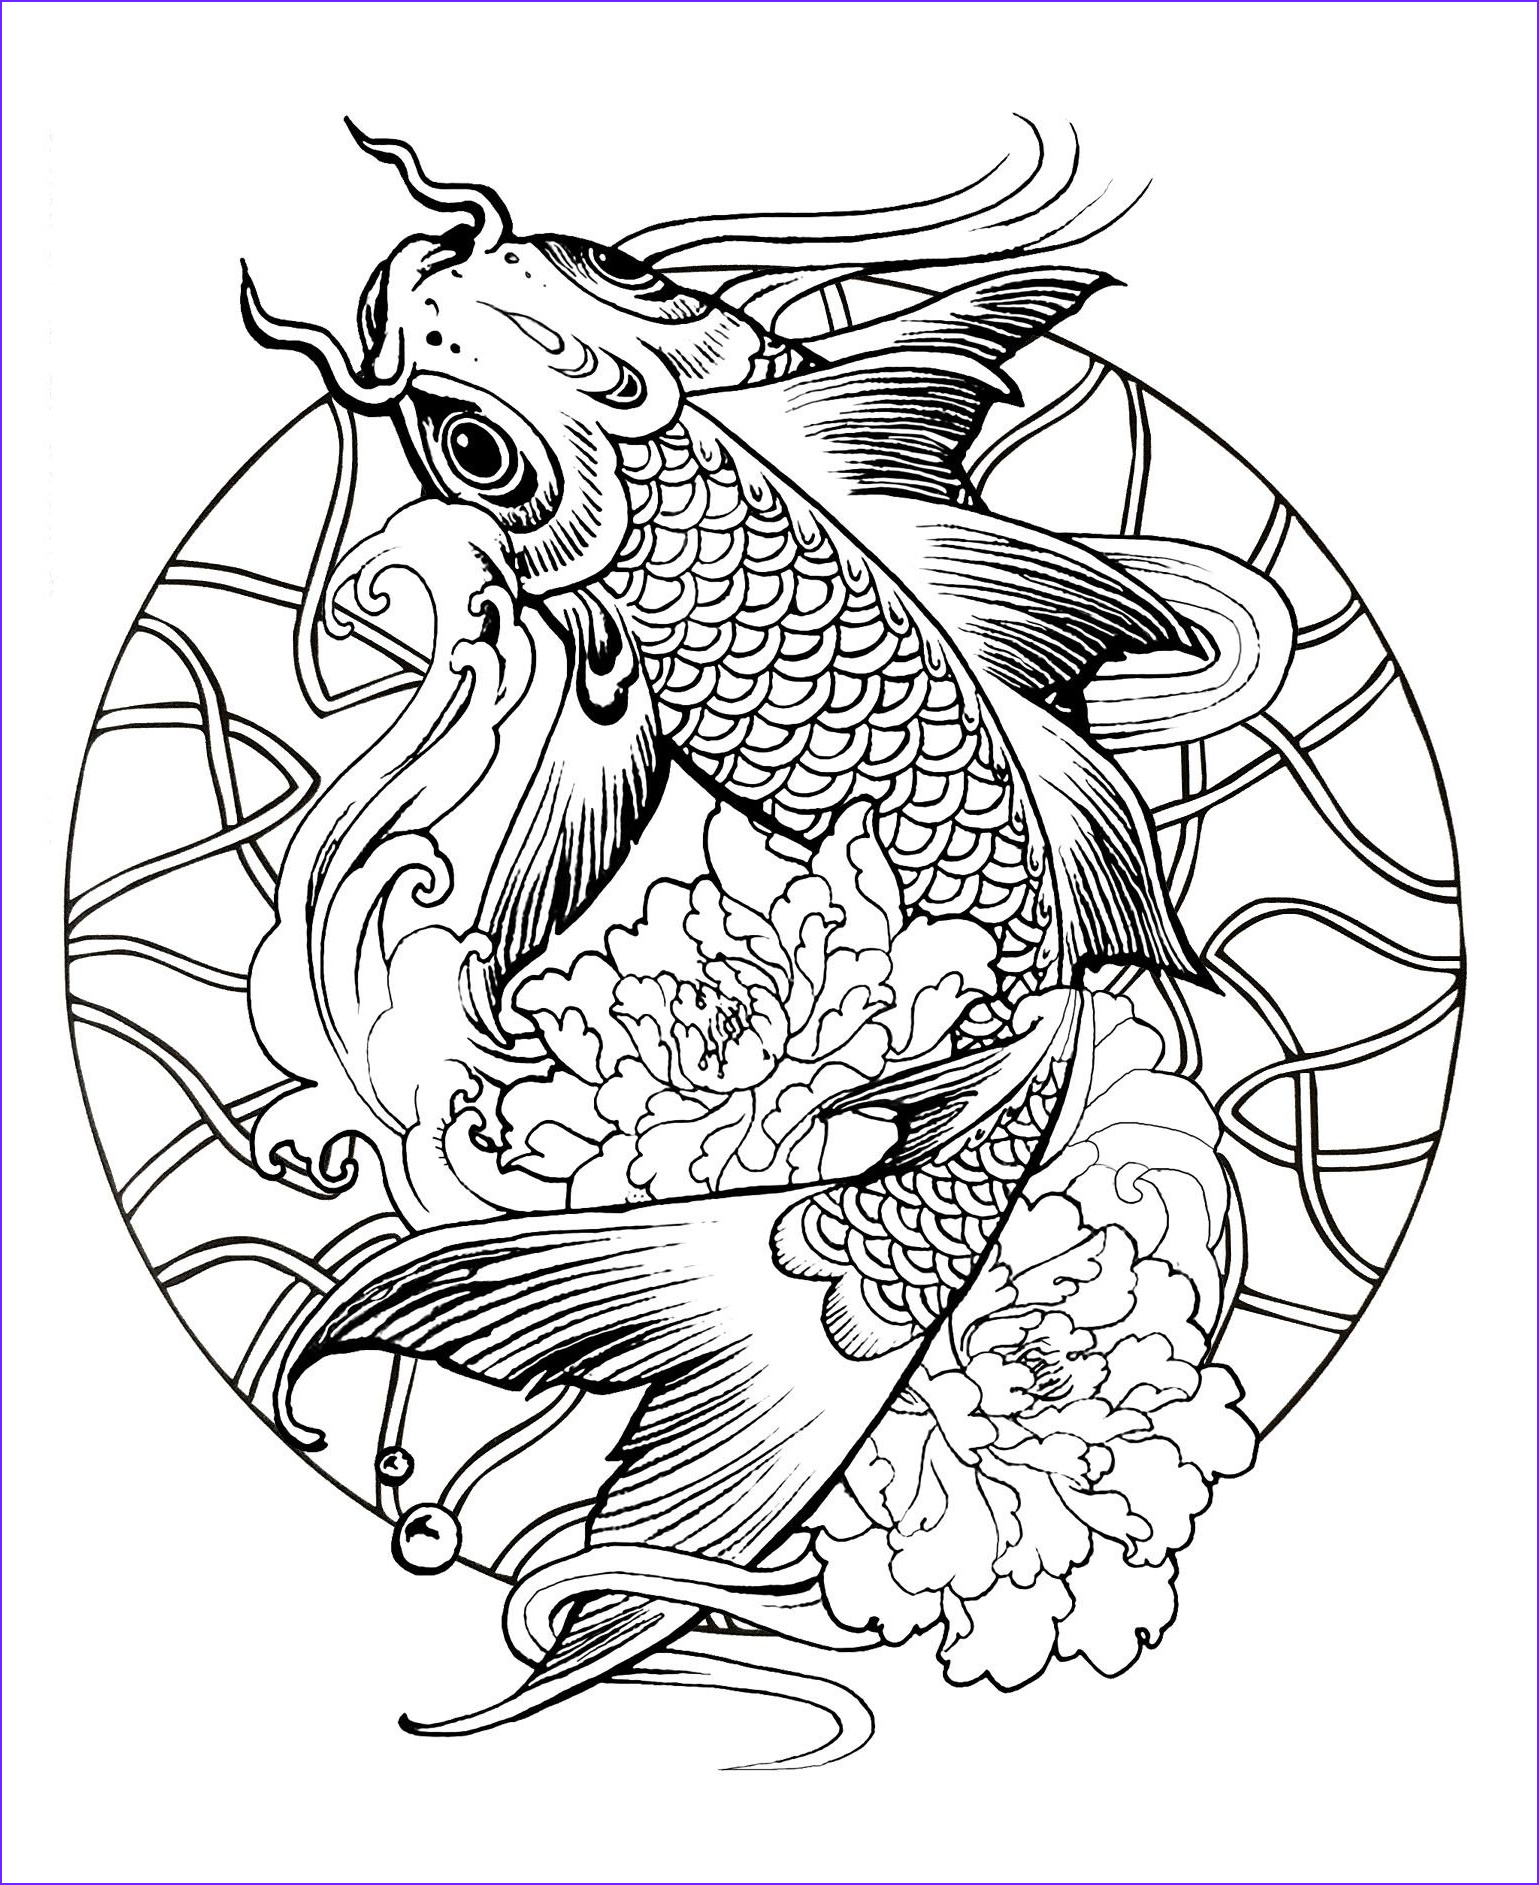 Adult Coloring Book Mandala Inspirational Collection Here are Difficult Mandalas Coloring Pages for Adults to